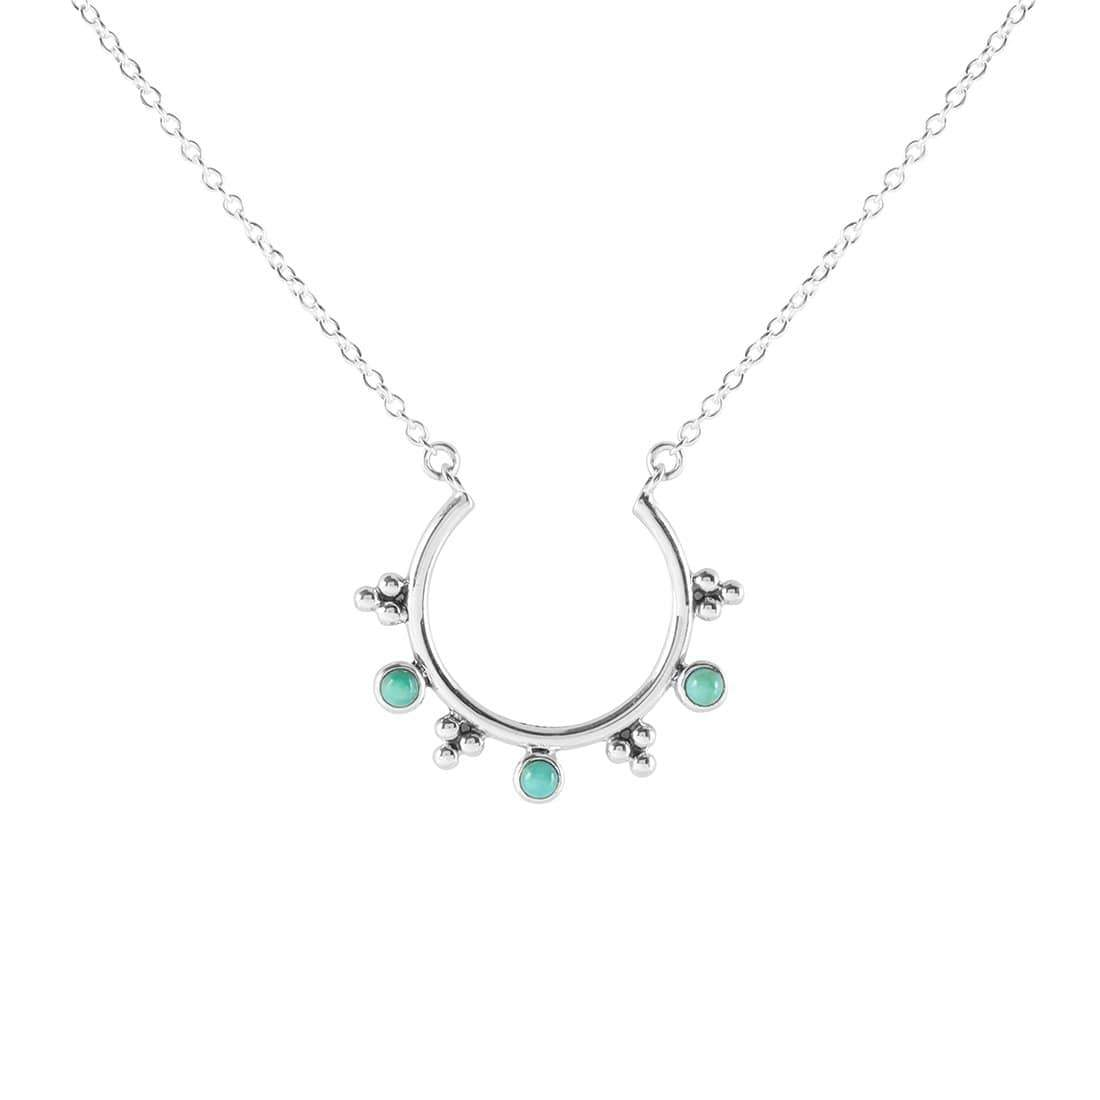 Midsummer Star Necklaces Jupiter's Moons Turquoise Necklace